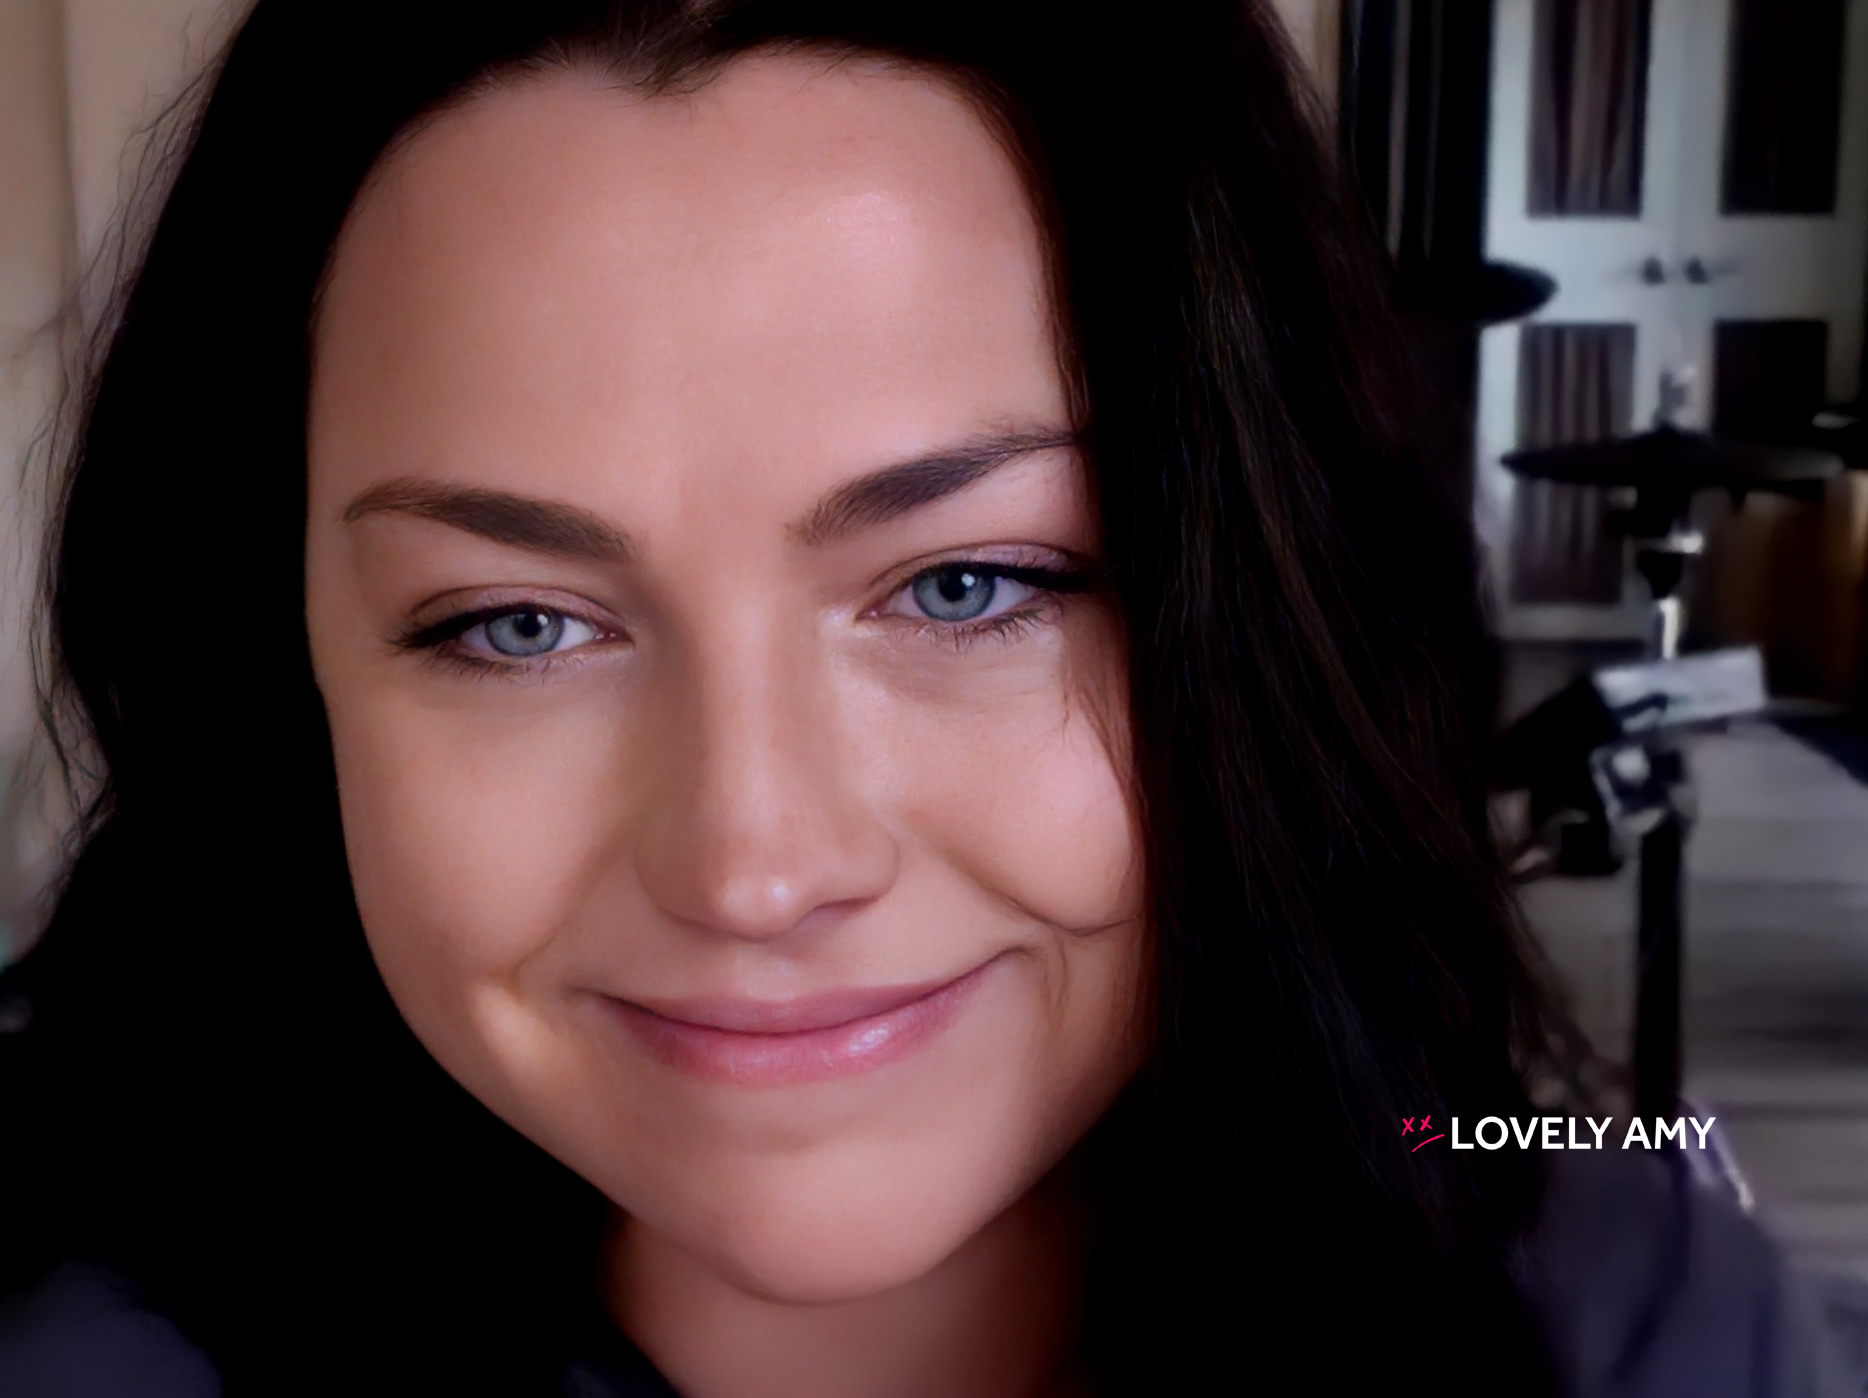 Evanescence Amy Lee - FM 99 WNOR VIRTUAL MEET AND GREET  #Evanescence #AmyLee